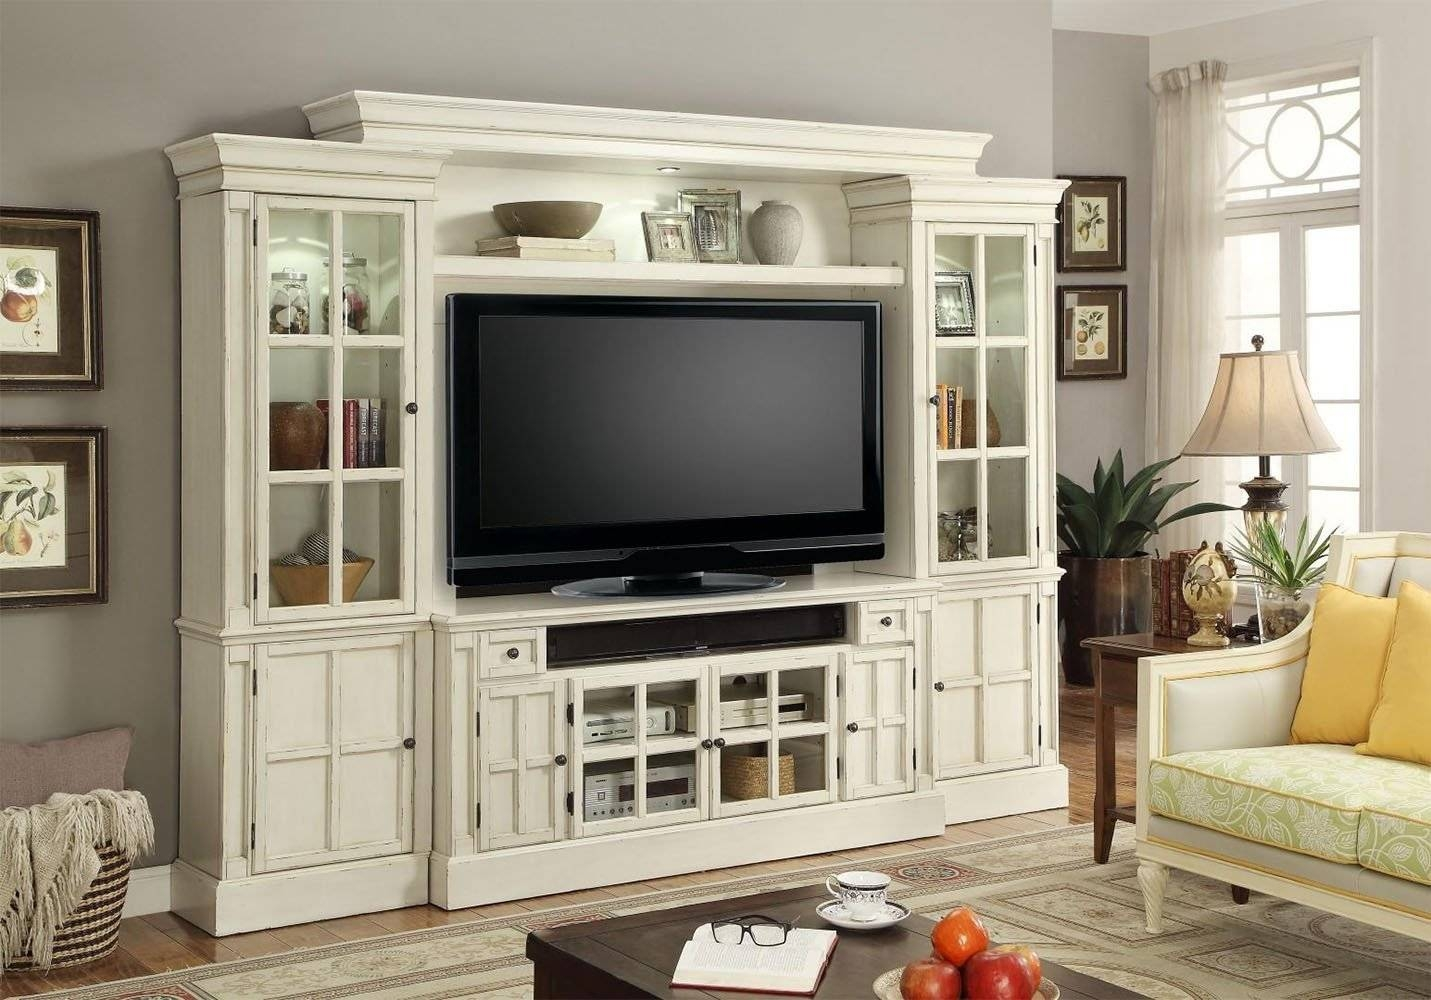 Wall Units: Awesome Tv Wall Entertainment Unit Sauder regarding Tv Entertainment Wall Units (Image 15 of 15)